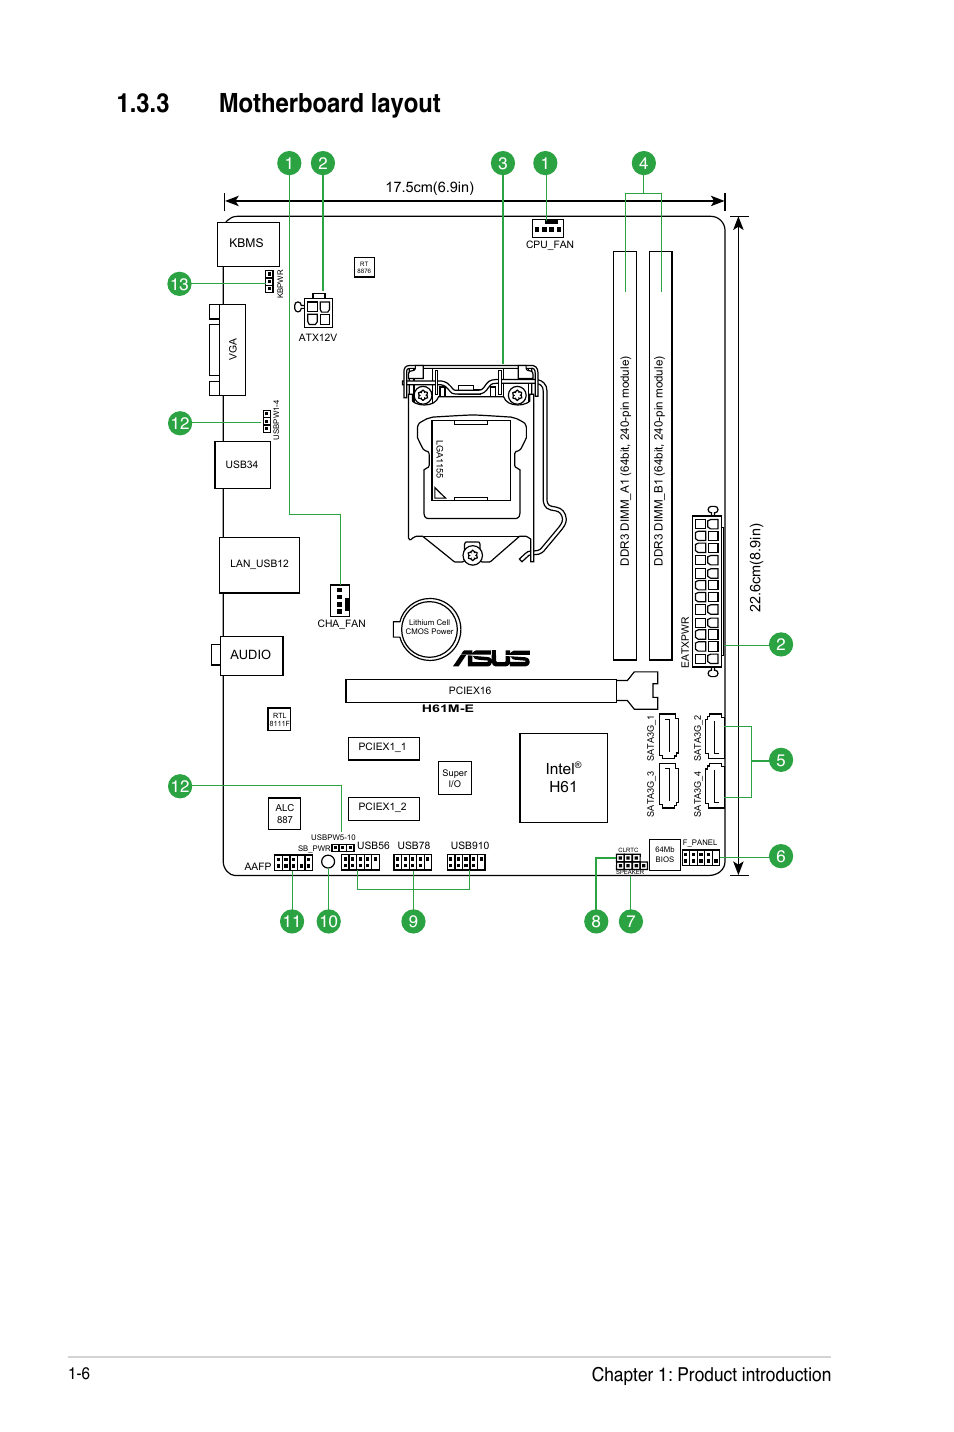 3 motherboard layout, Chapter 1: product introduction